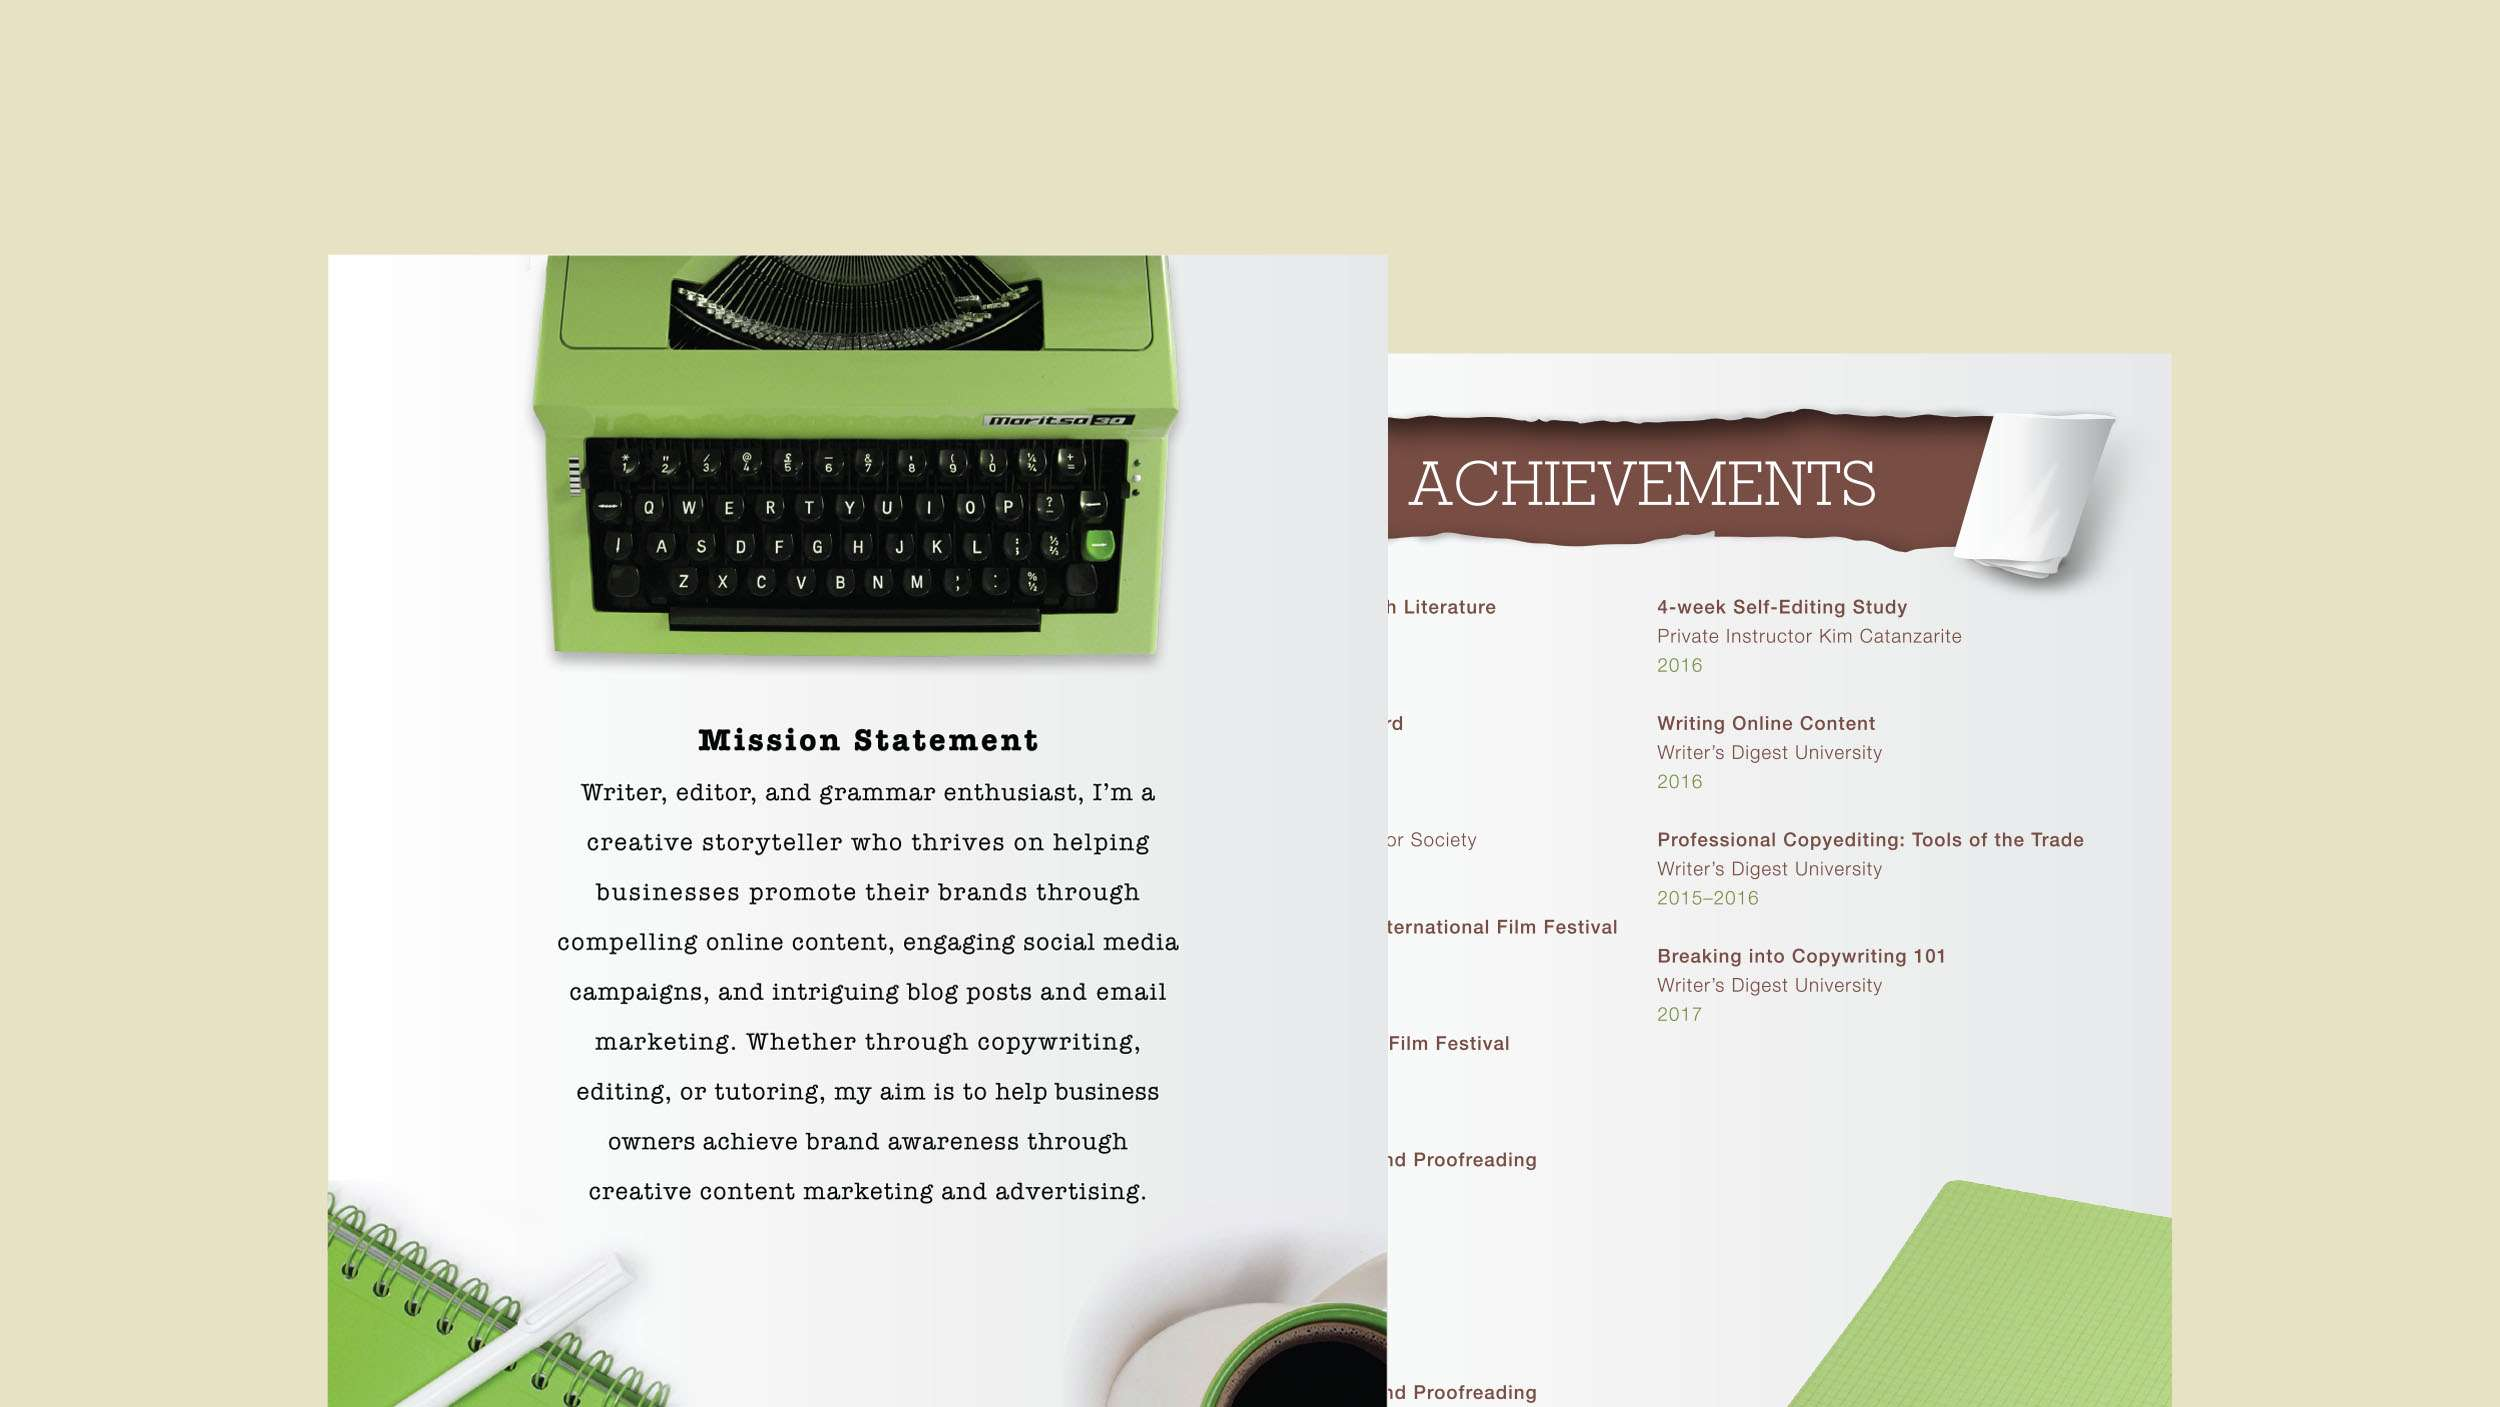 Custom resumé design for copywriter using typewriter, notepad, and coffee cup graphics.